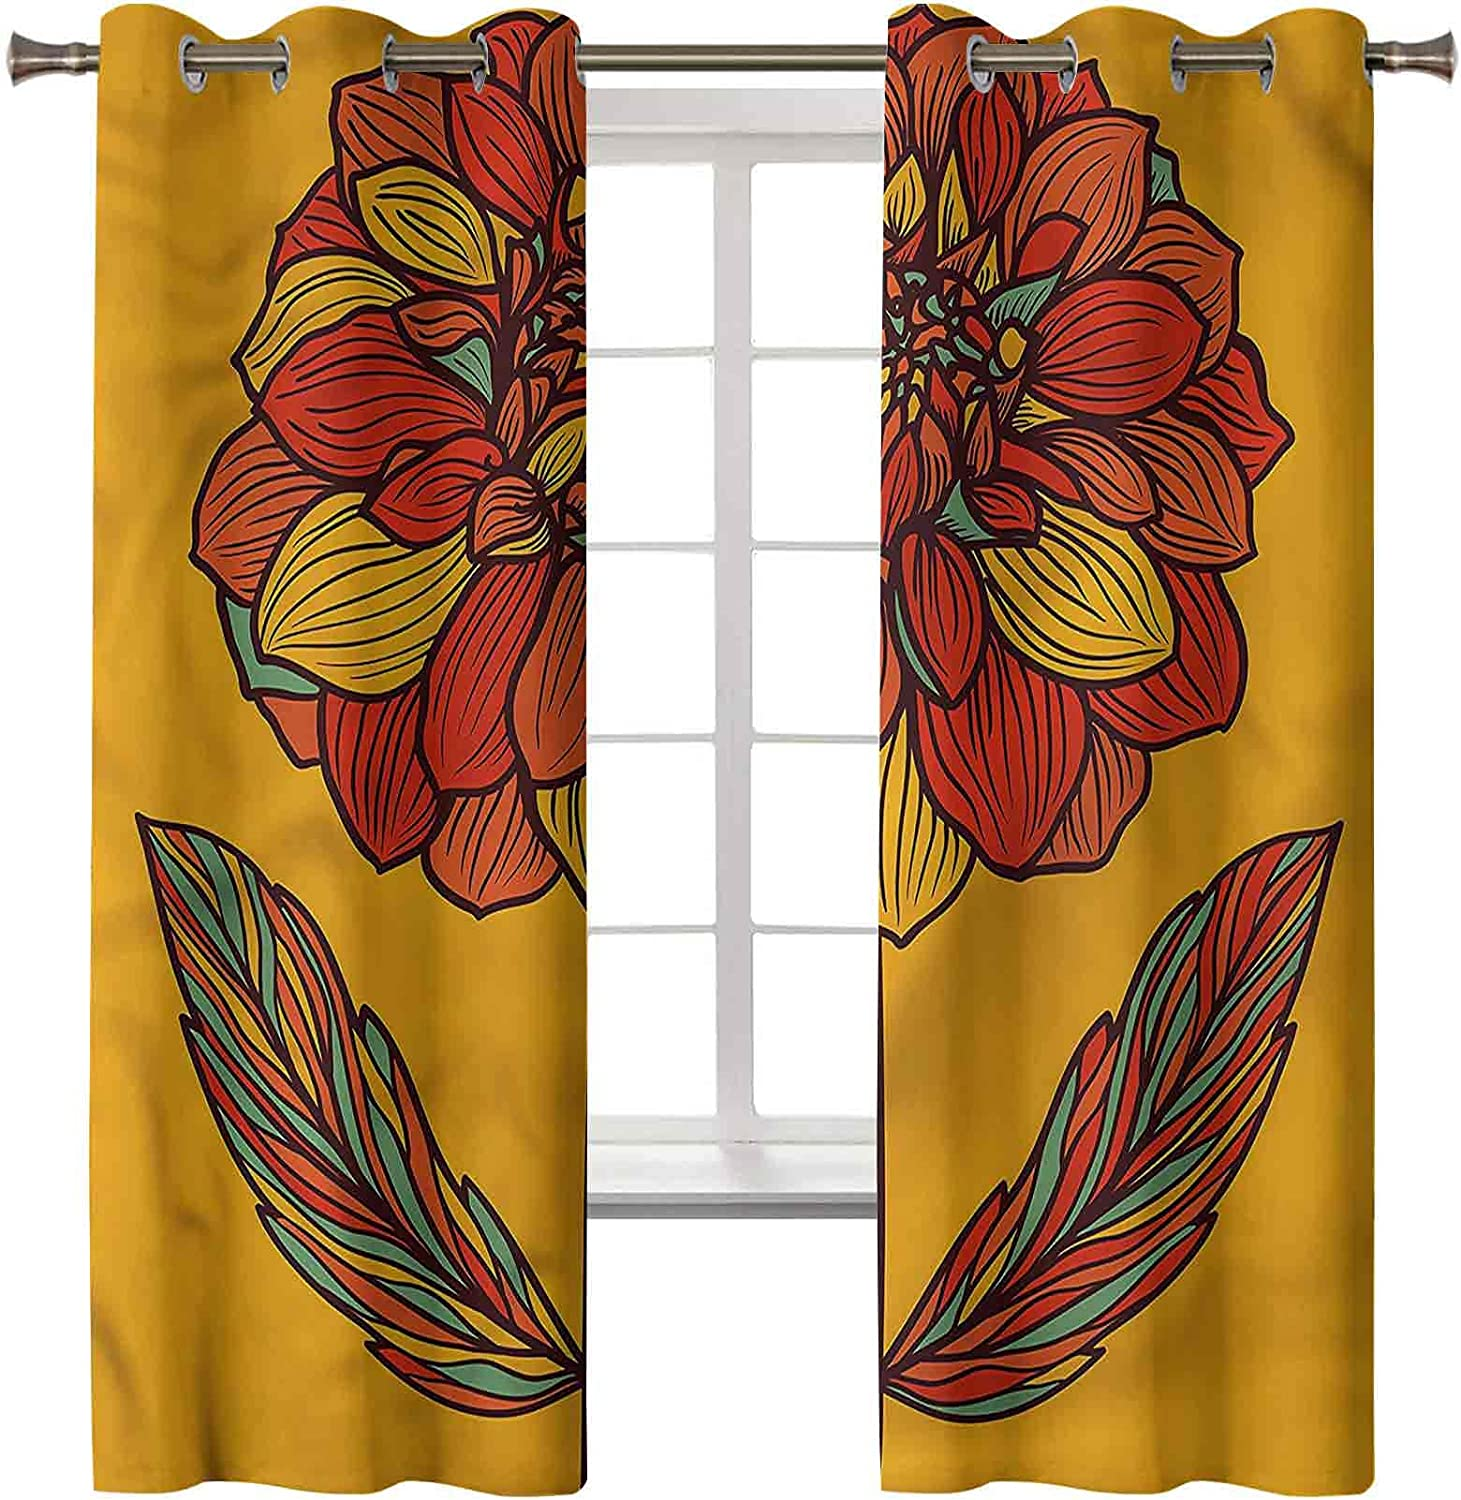 Flower Minneapolis Mall Blackout Indianapolis Mall Curtains for Bedroom Set 42W Panels of 63L x 2